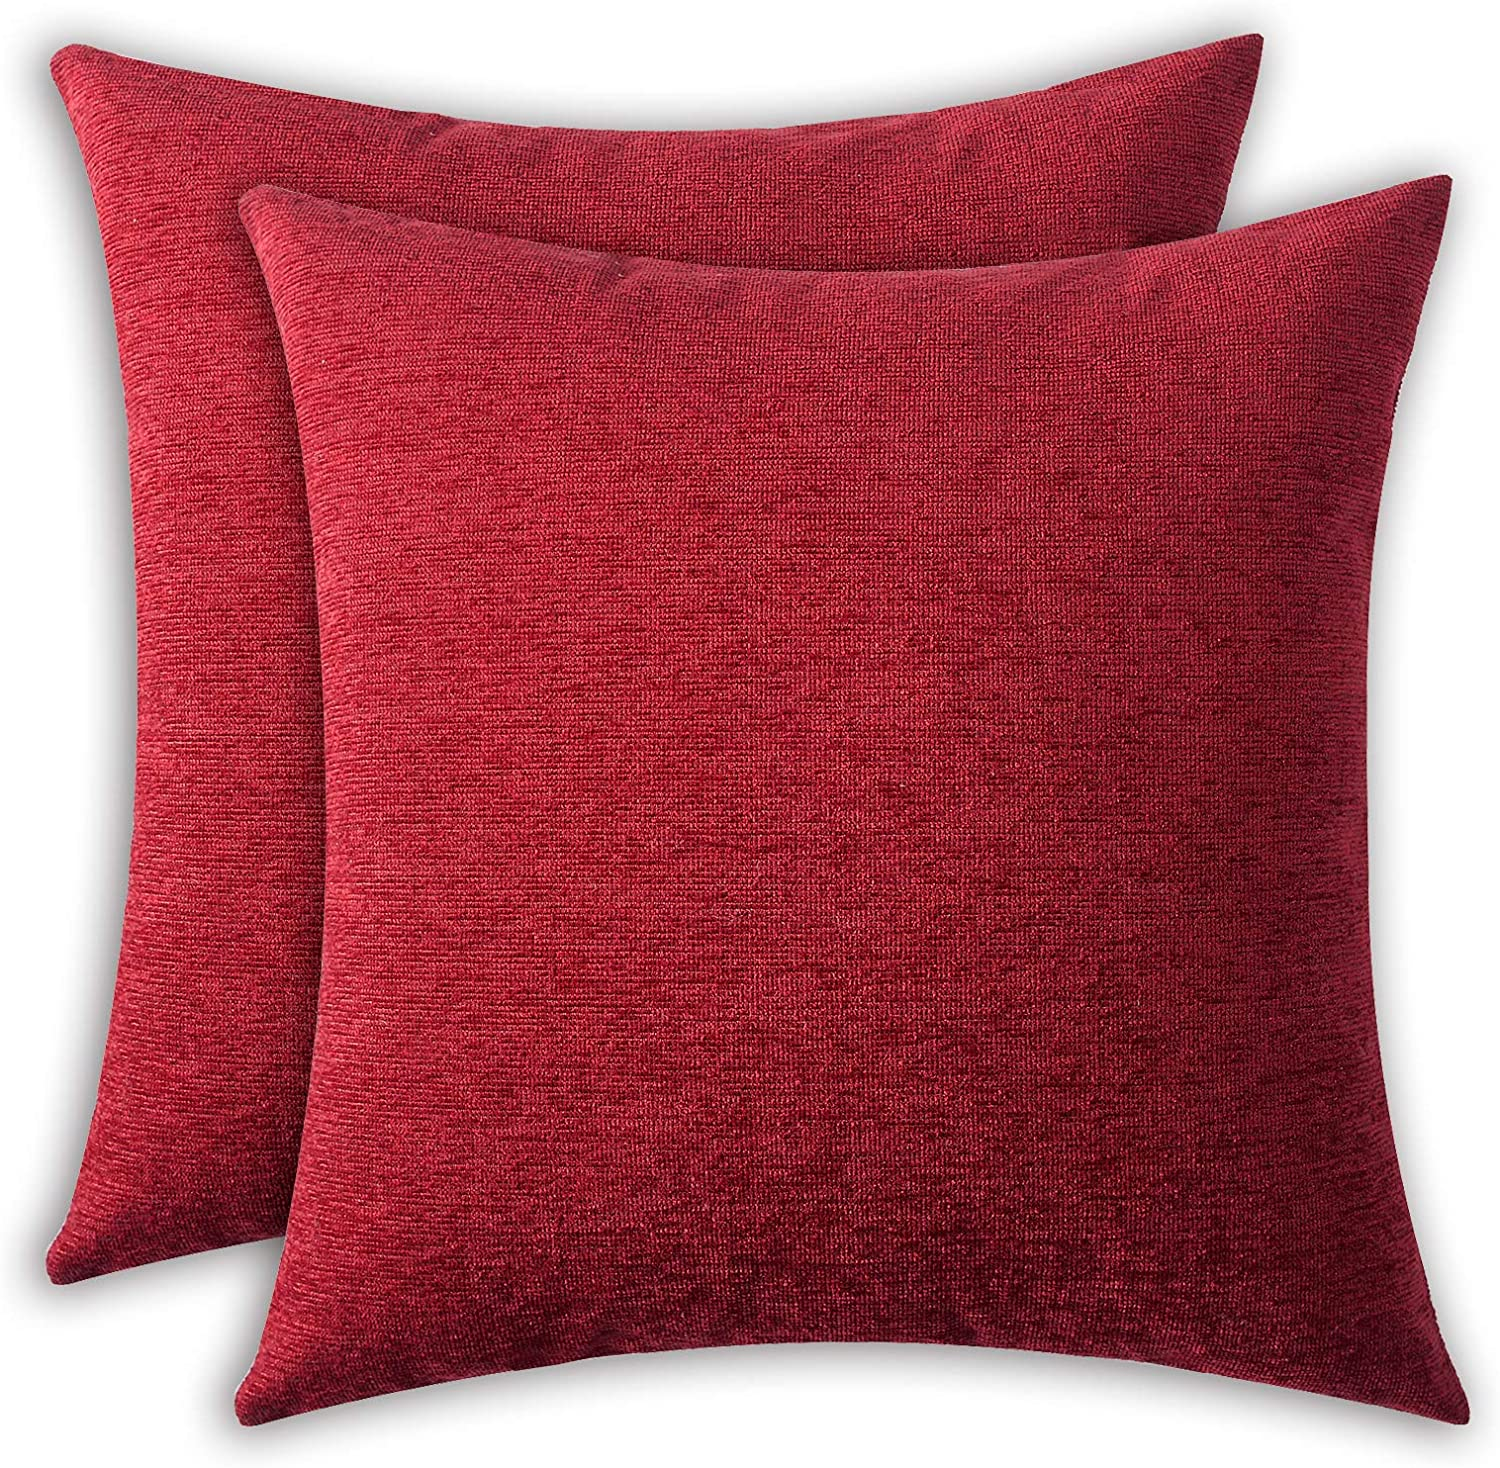 HPUK 2 Pack Solid Pillow Cover Sparkle Chenille Plain Modern Pillowcase, 17x17 inch, for Couch Sofa Living Room Office, Red